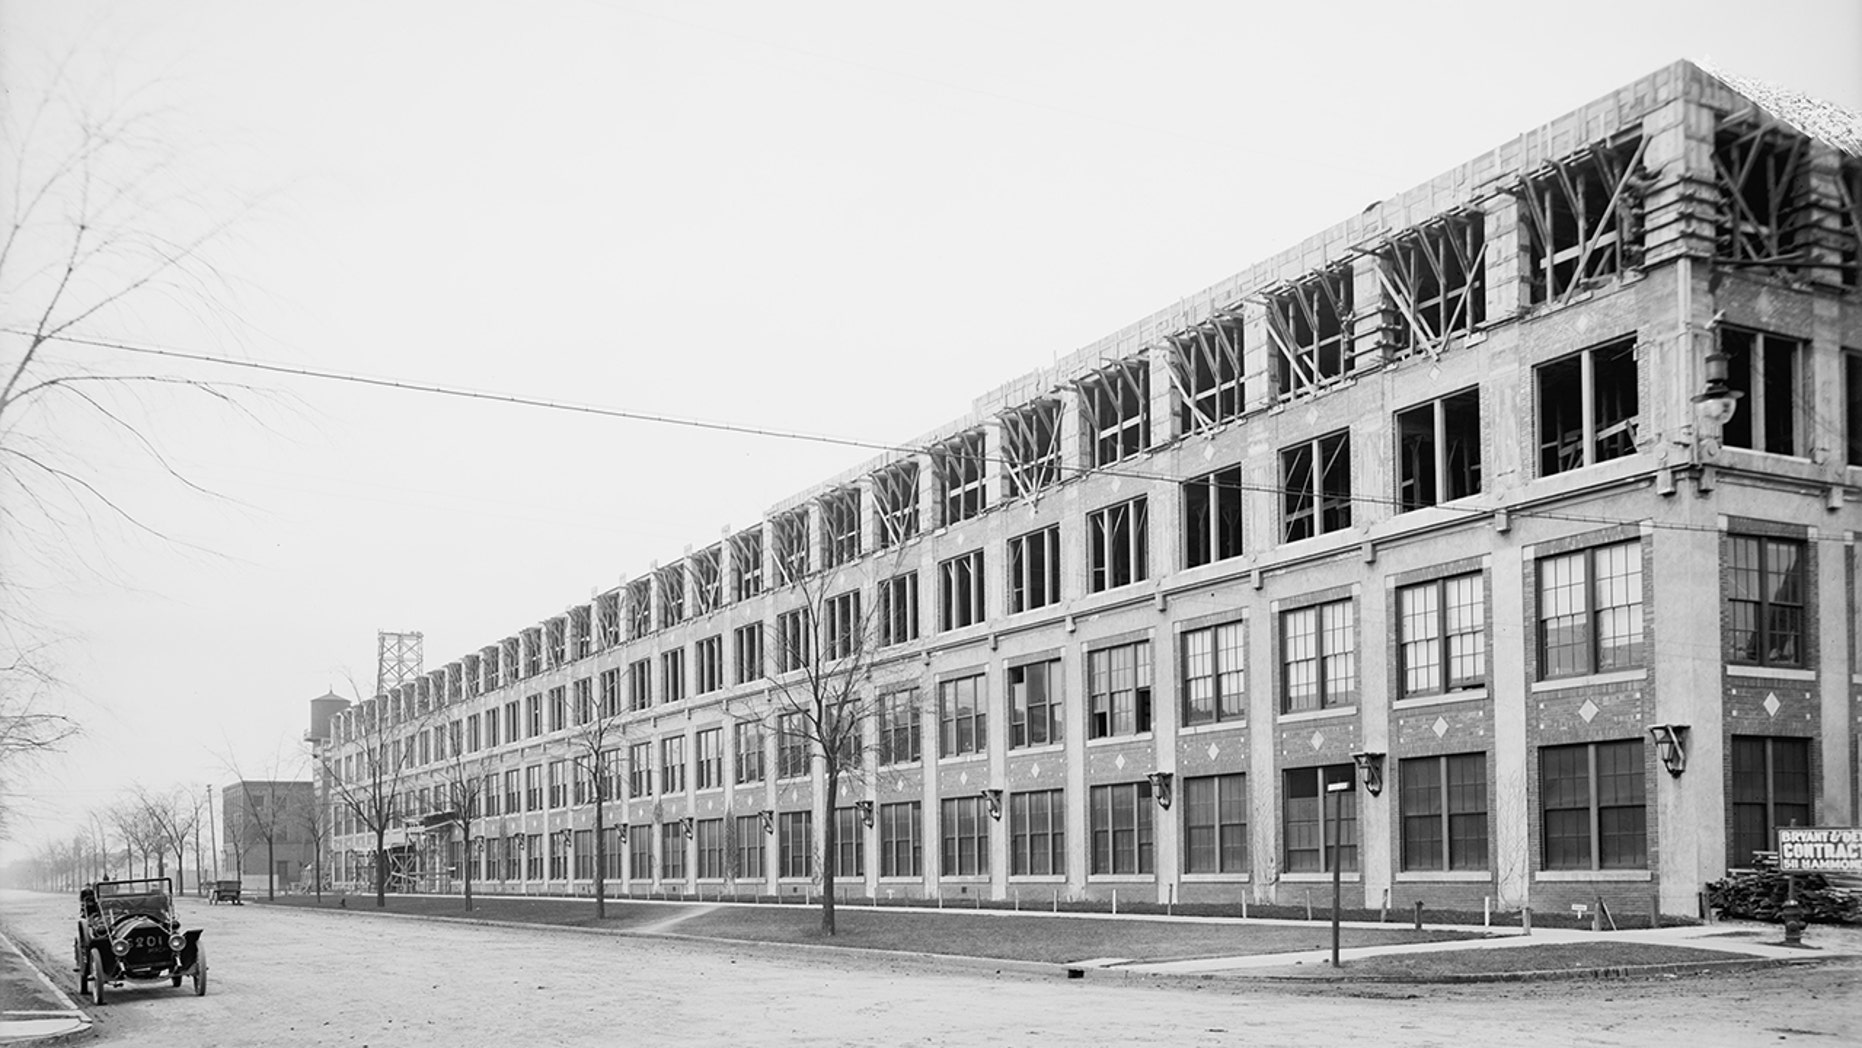 historic Packard Automotive Plant circa 1910